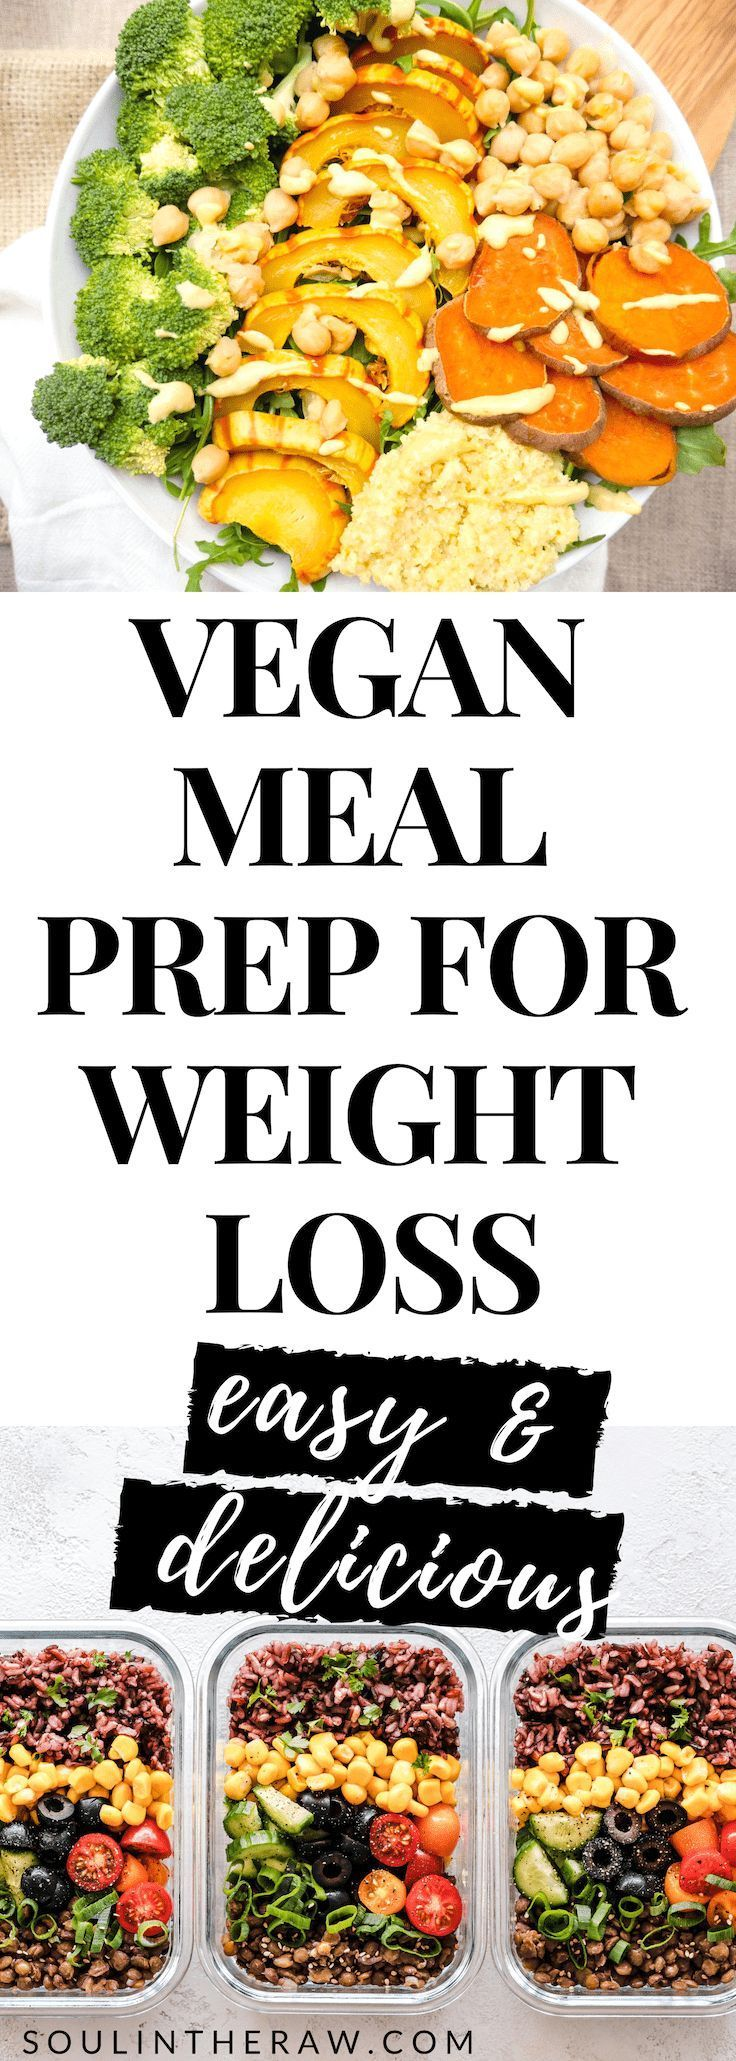 Plant Based Diet Weight Loss: The Vegan Meal Prep Plan